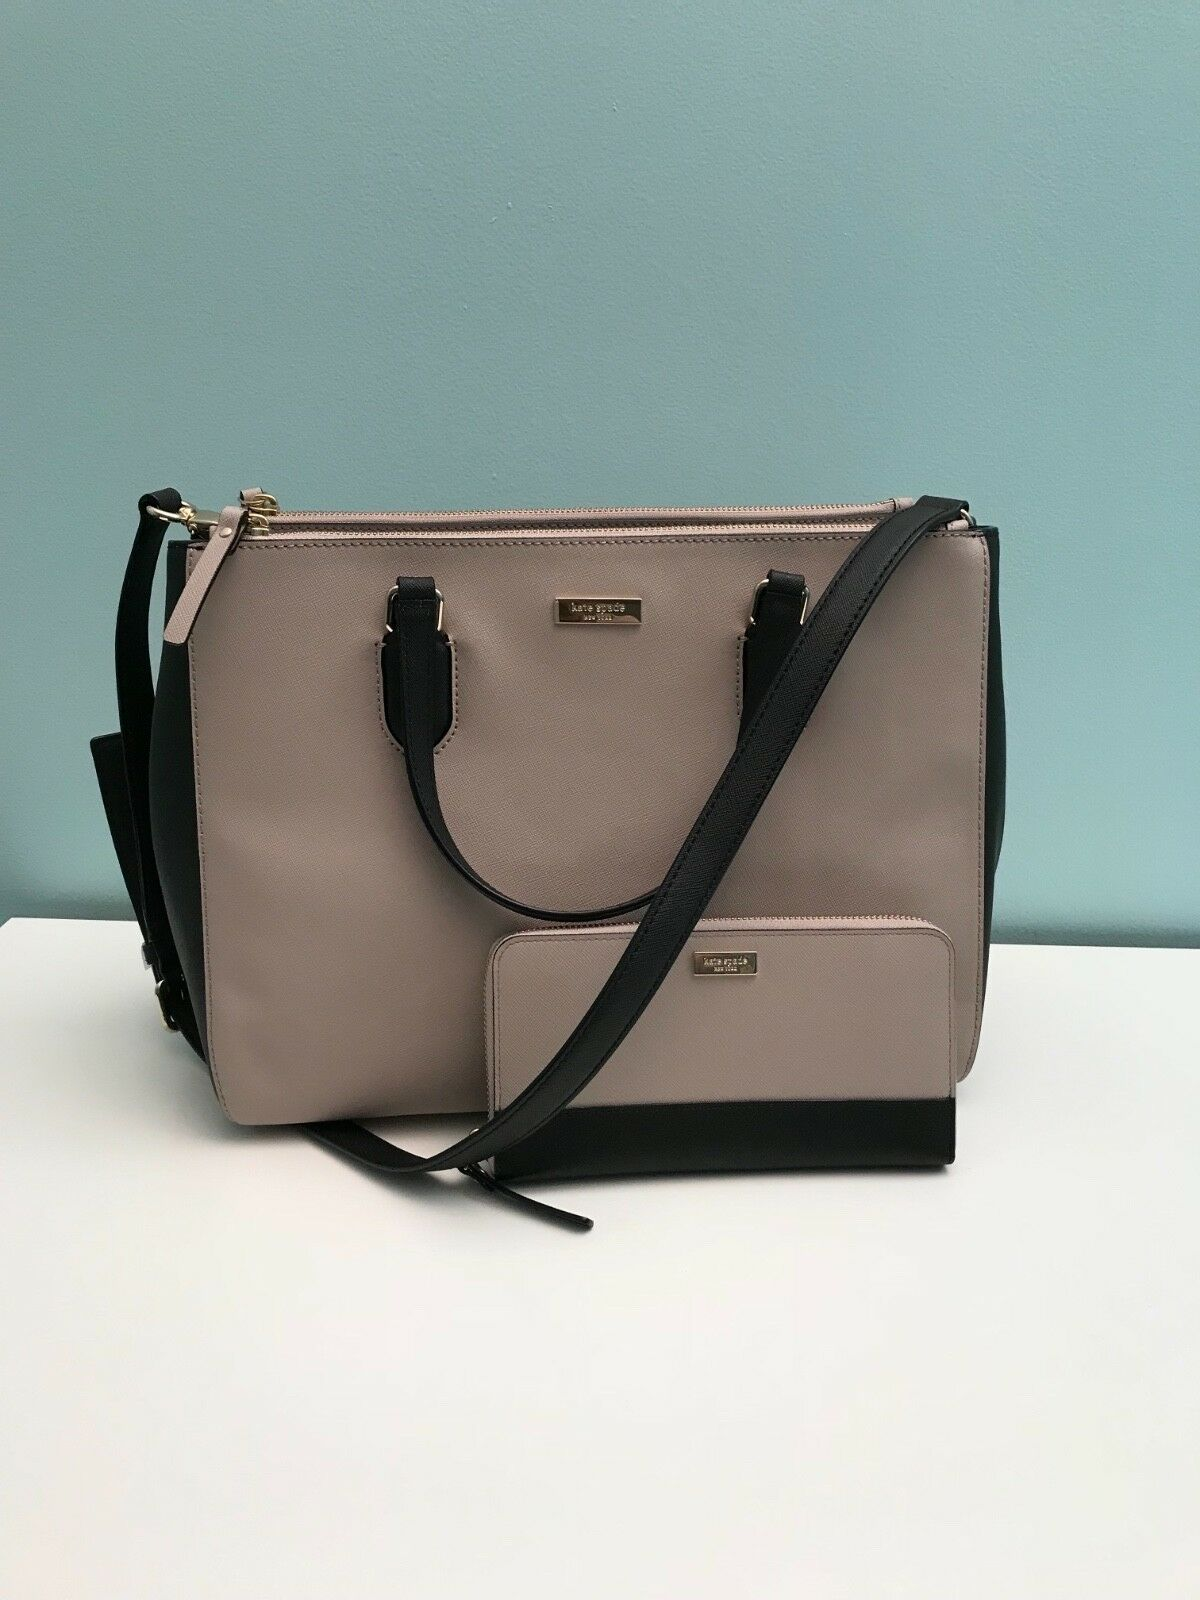 NWT Kate Spade Purse/Satchel/Large/Beautiful/Nude and Black!!!